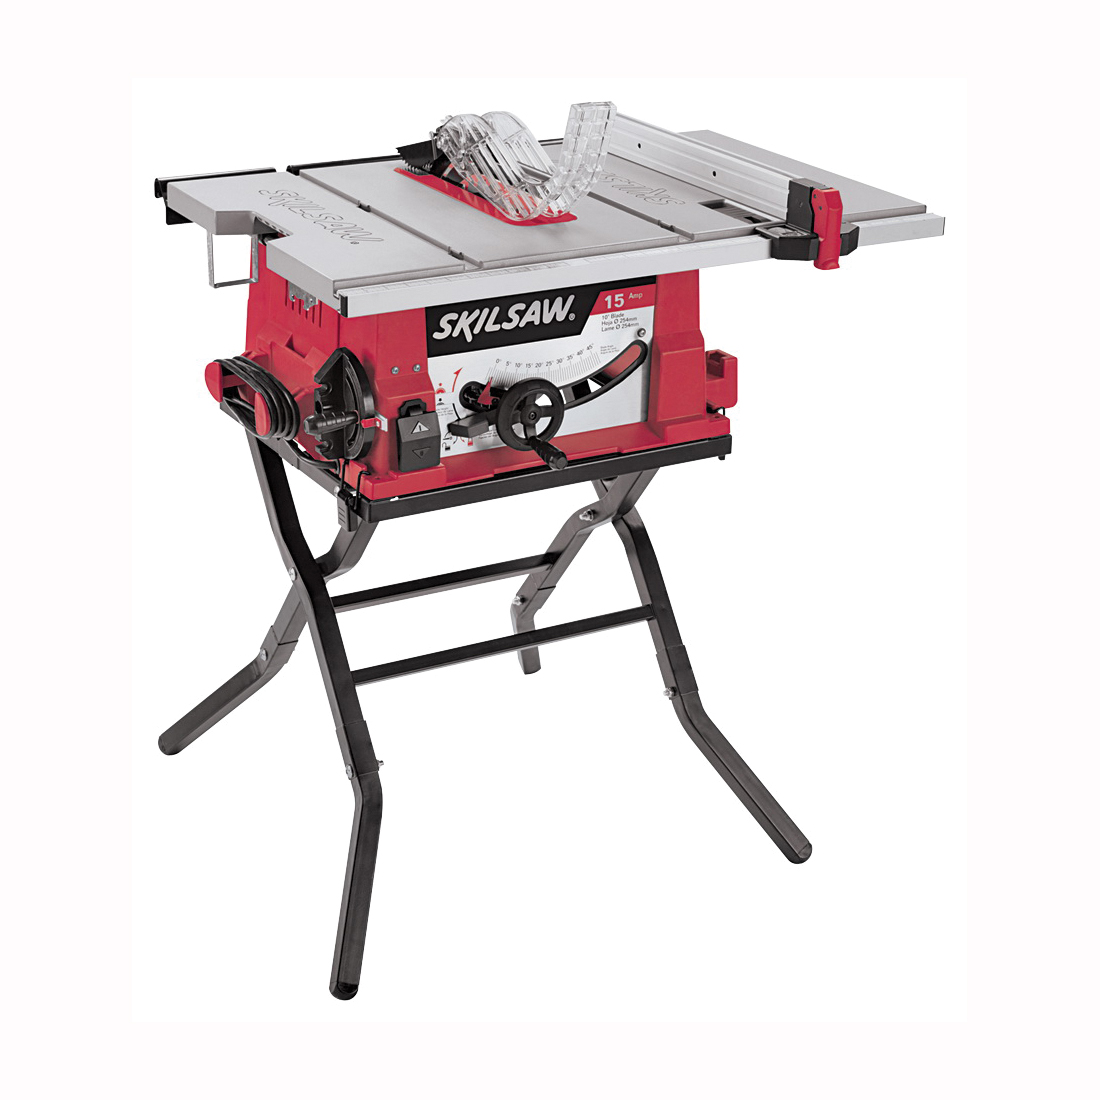 Picture of SKILSAW 3410-02 Table Saw with Folding Stand, 120 V, 13 A, 1800 W, 10 in Dia Blade, 5/8 in Arbor, 5000 rpm Speed